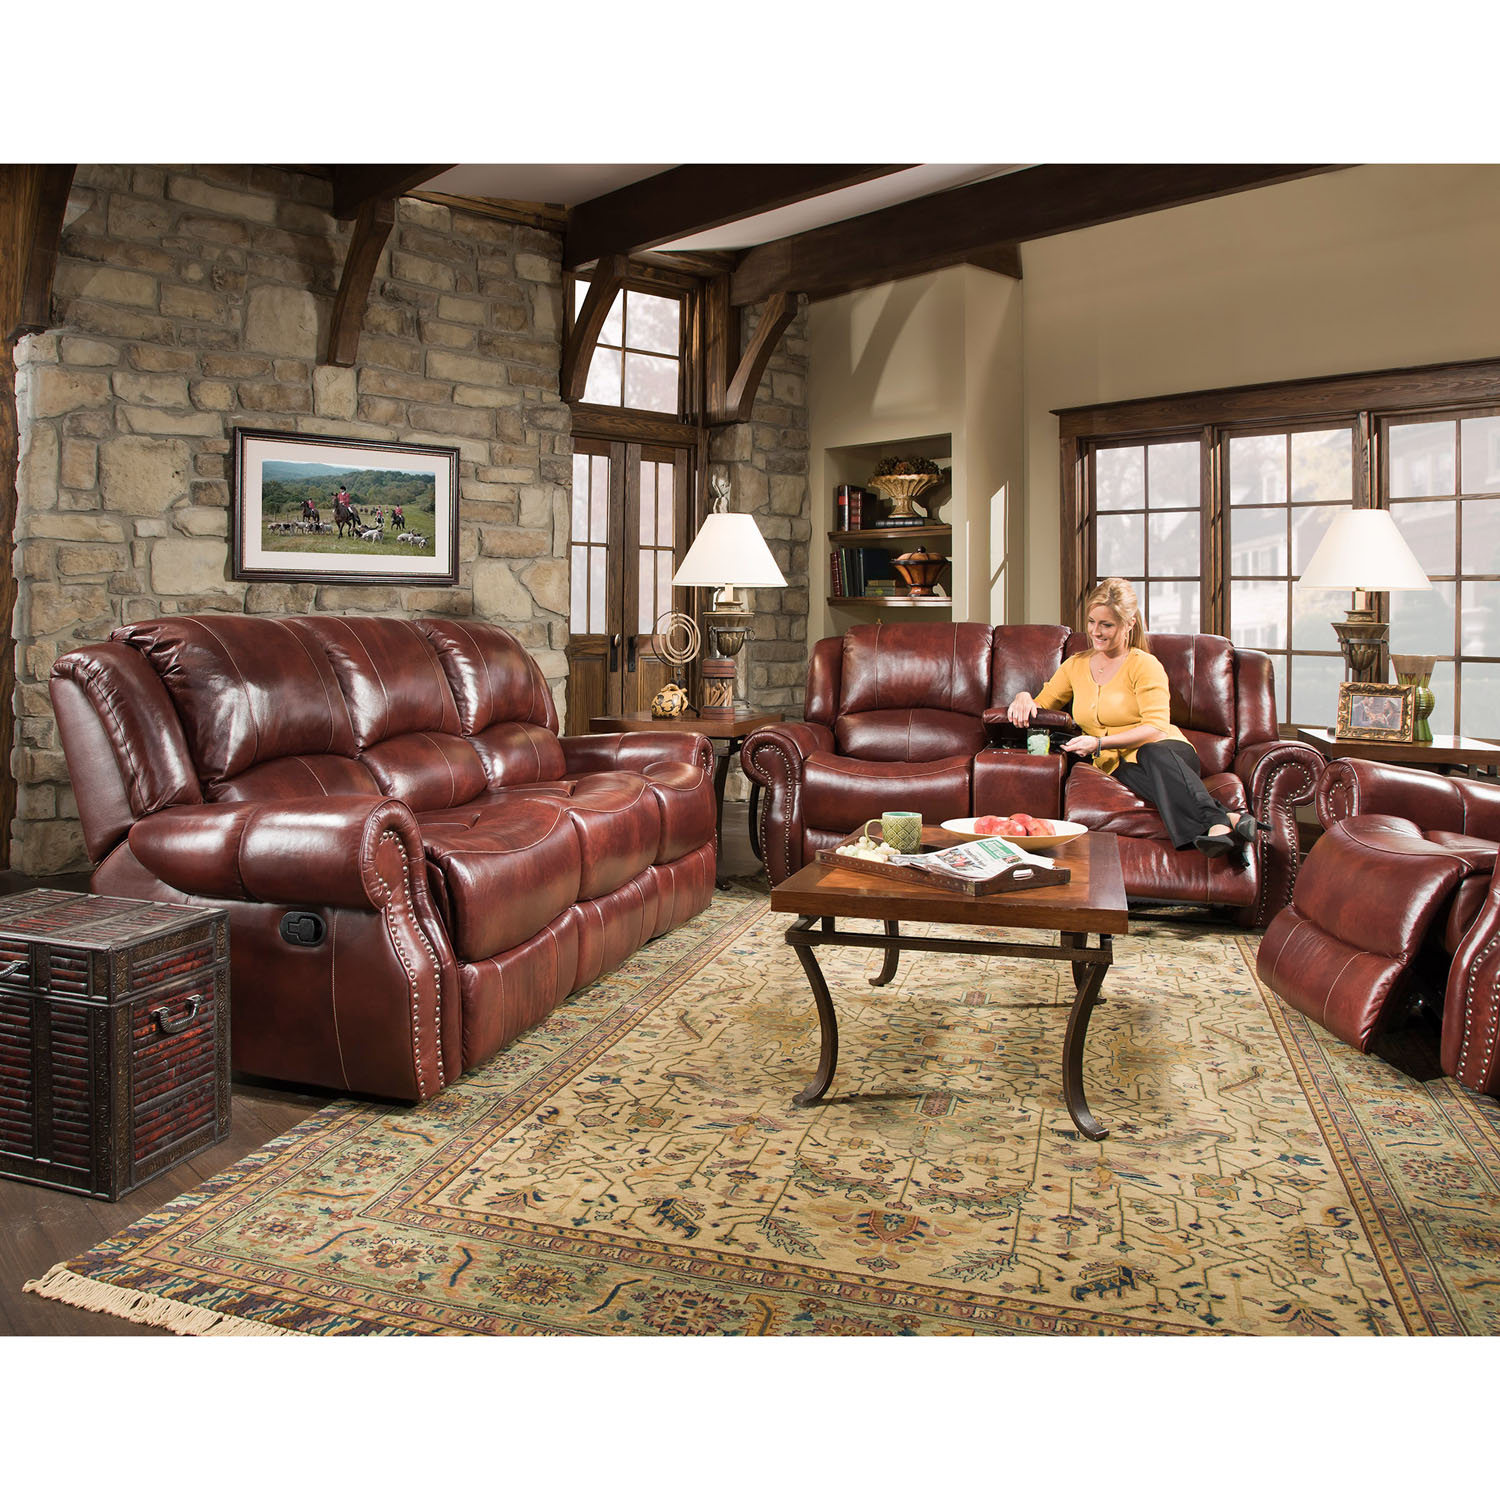 Cambridge Telluride 3 Piece Living Room Set: Sofa, Loveseat And Recliner